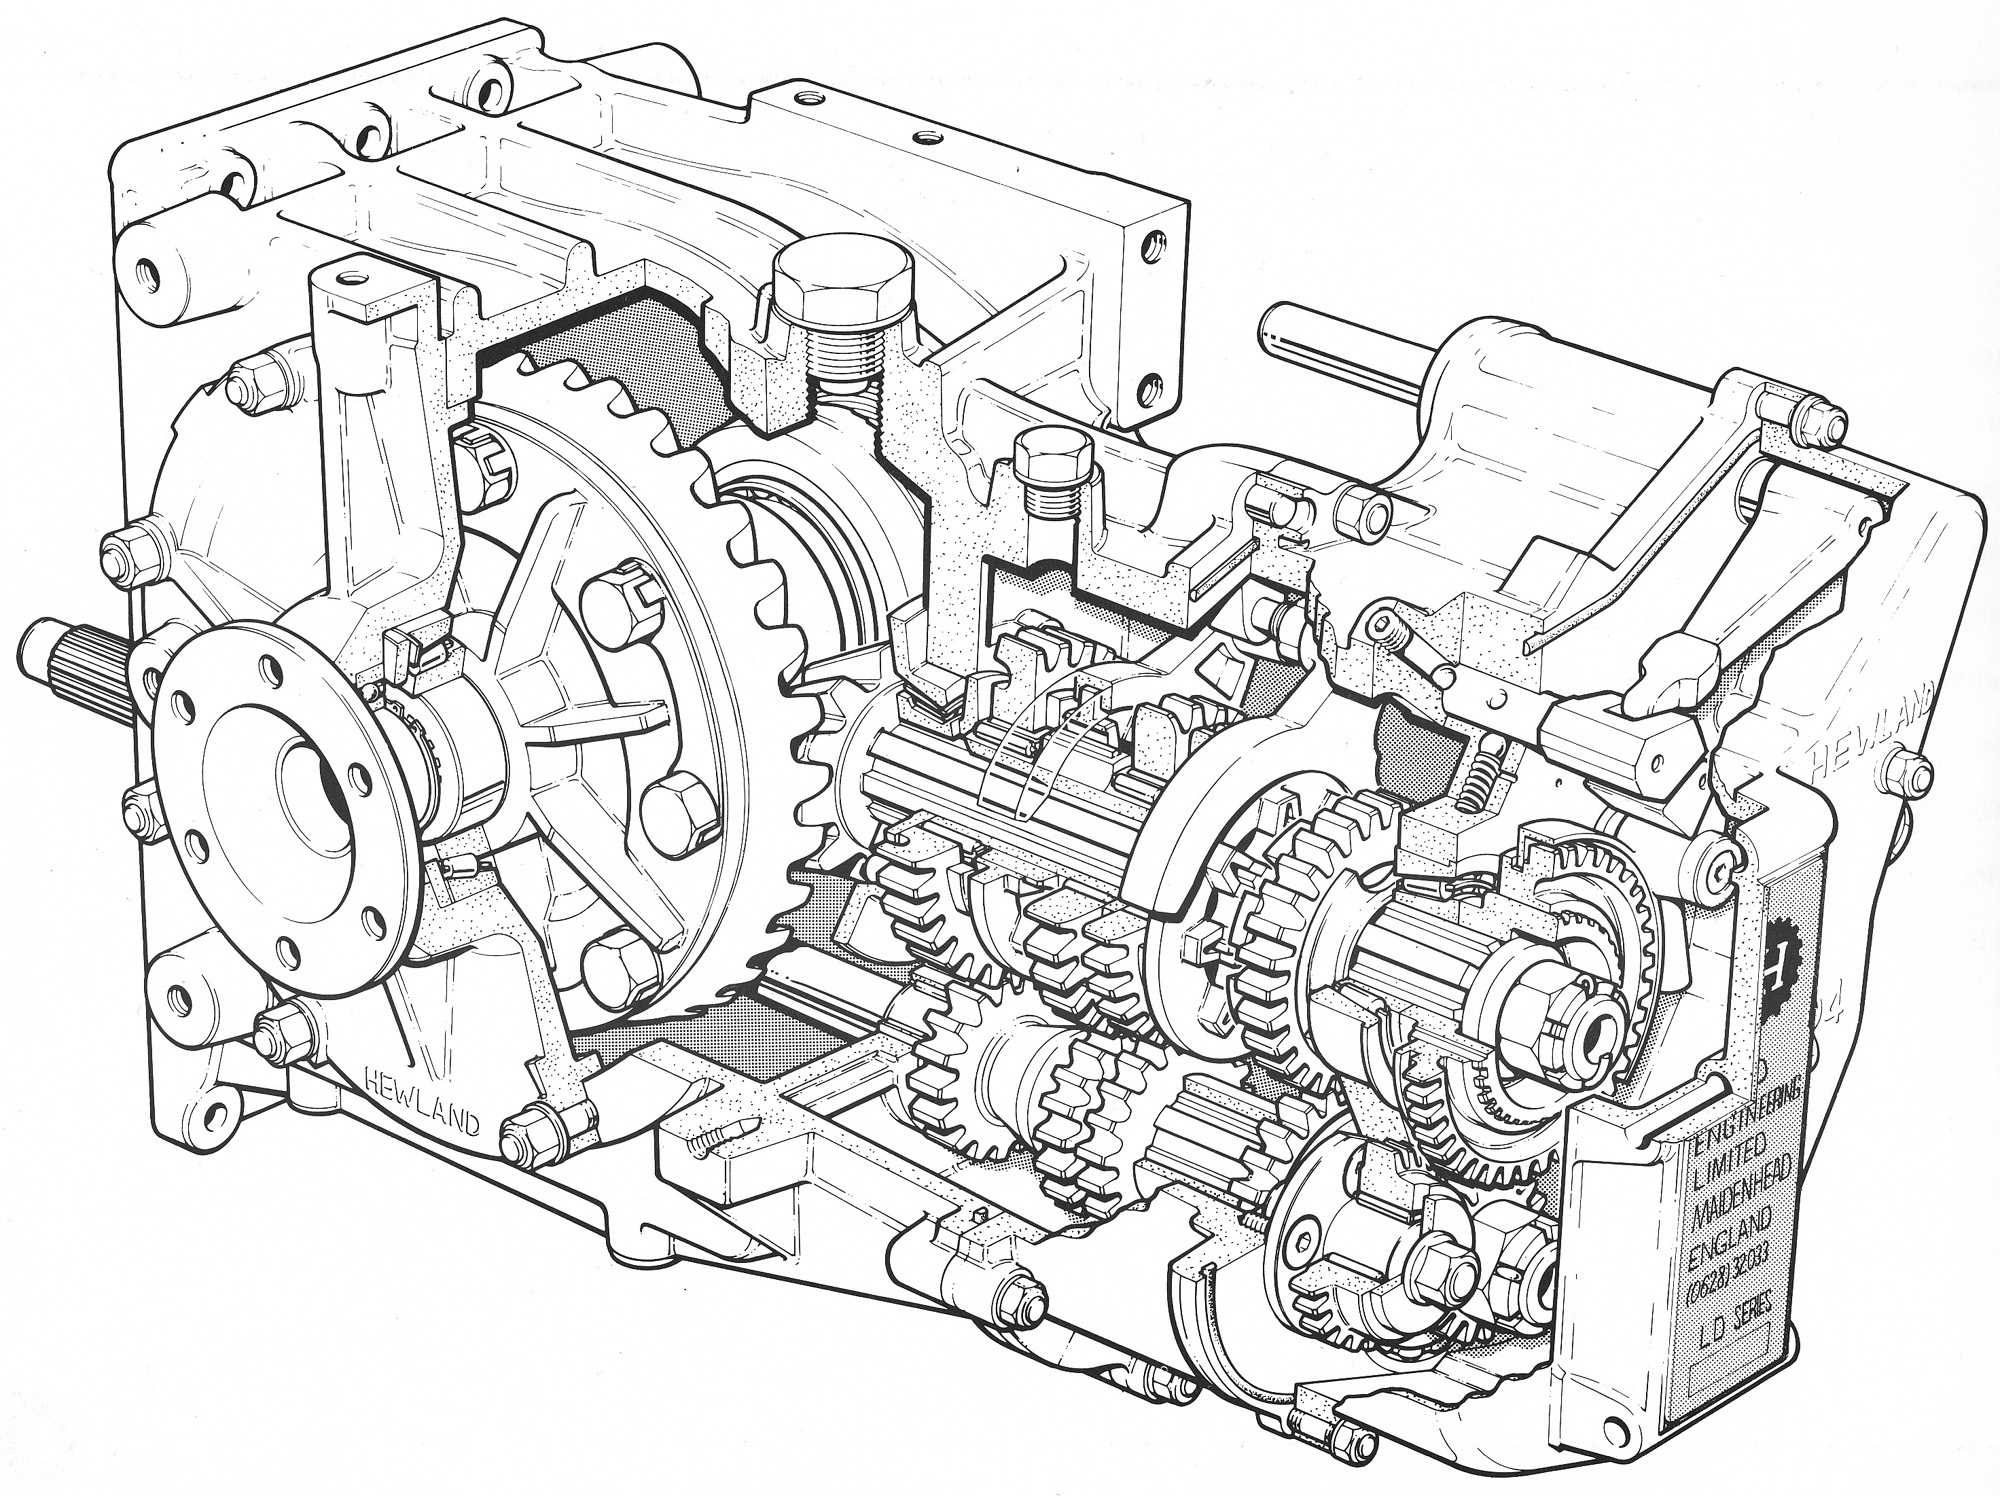 2007 shelby gt500 fuse box diagram